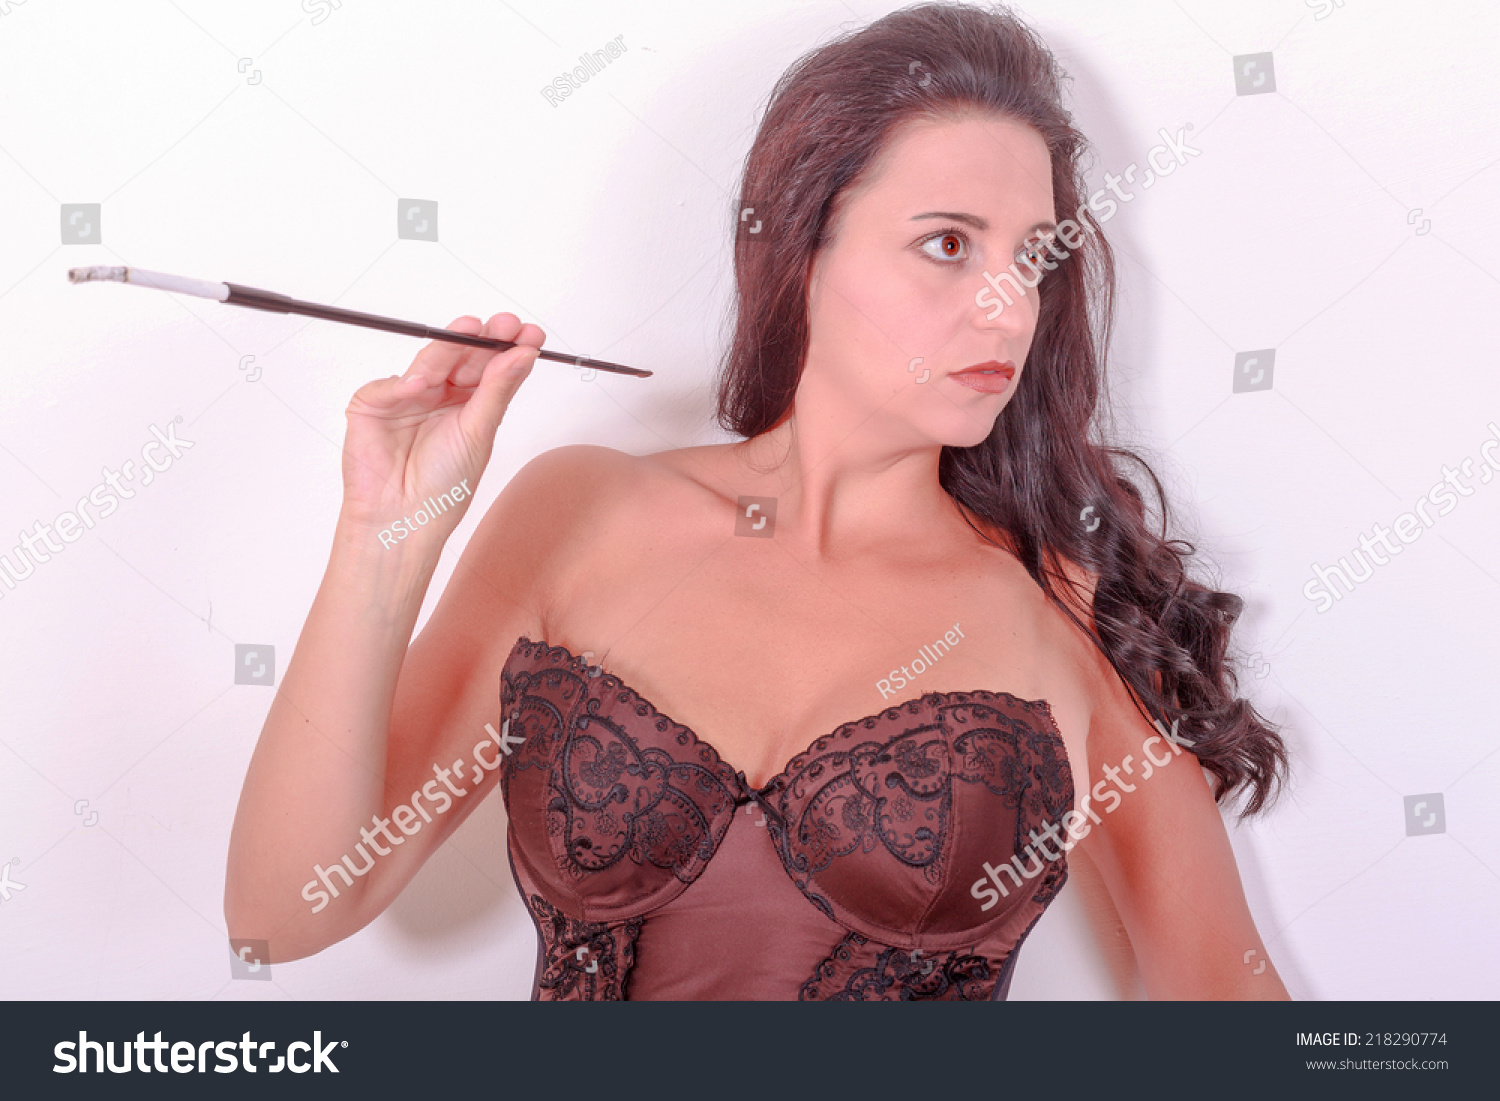 girl in sexy lingerie smoking a cigarette